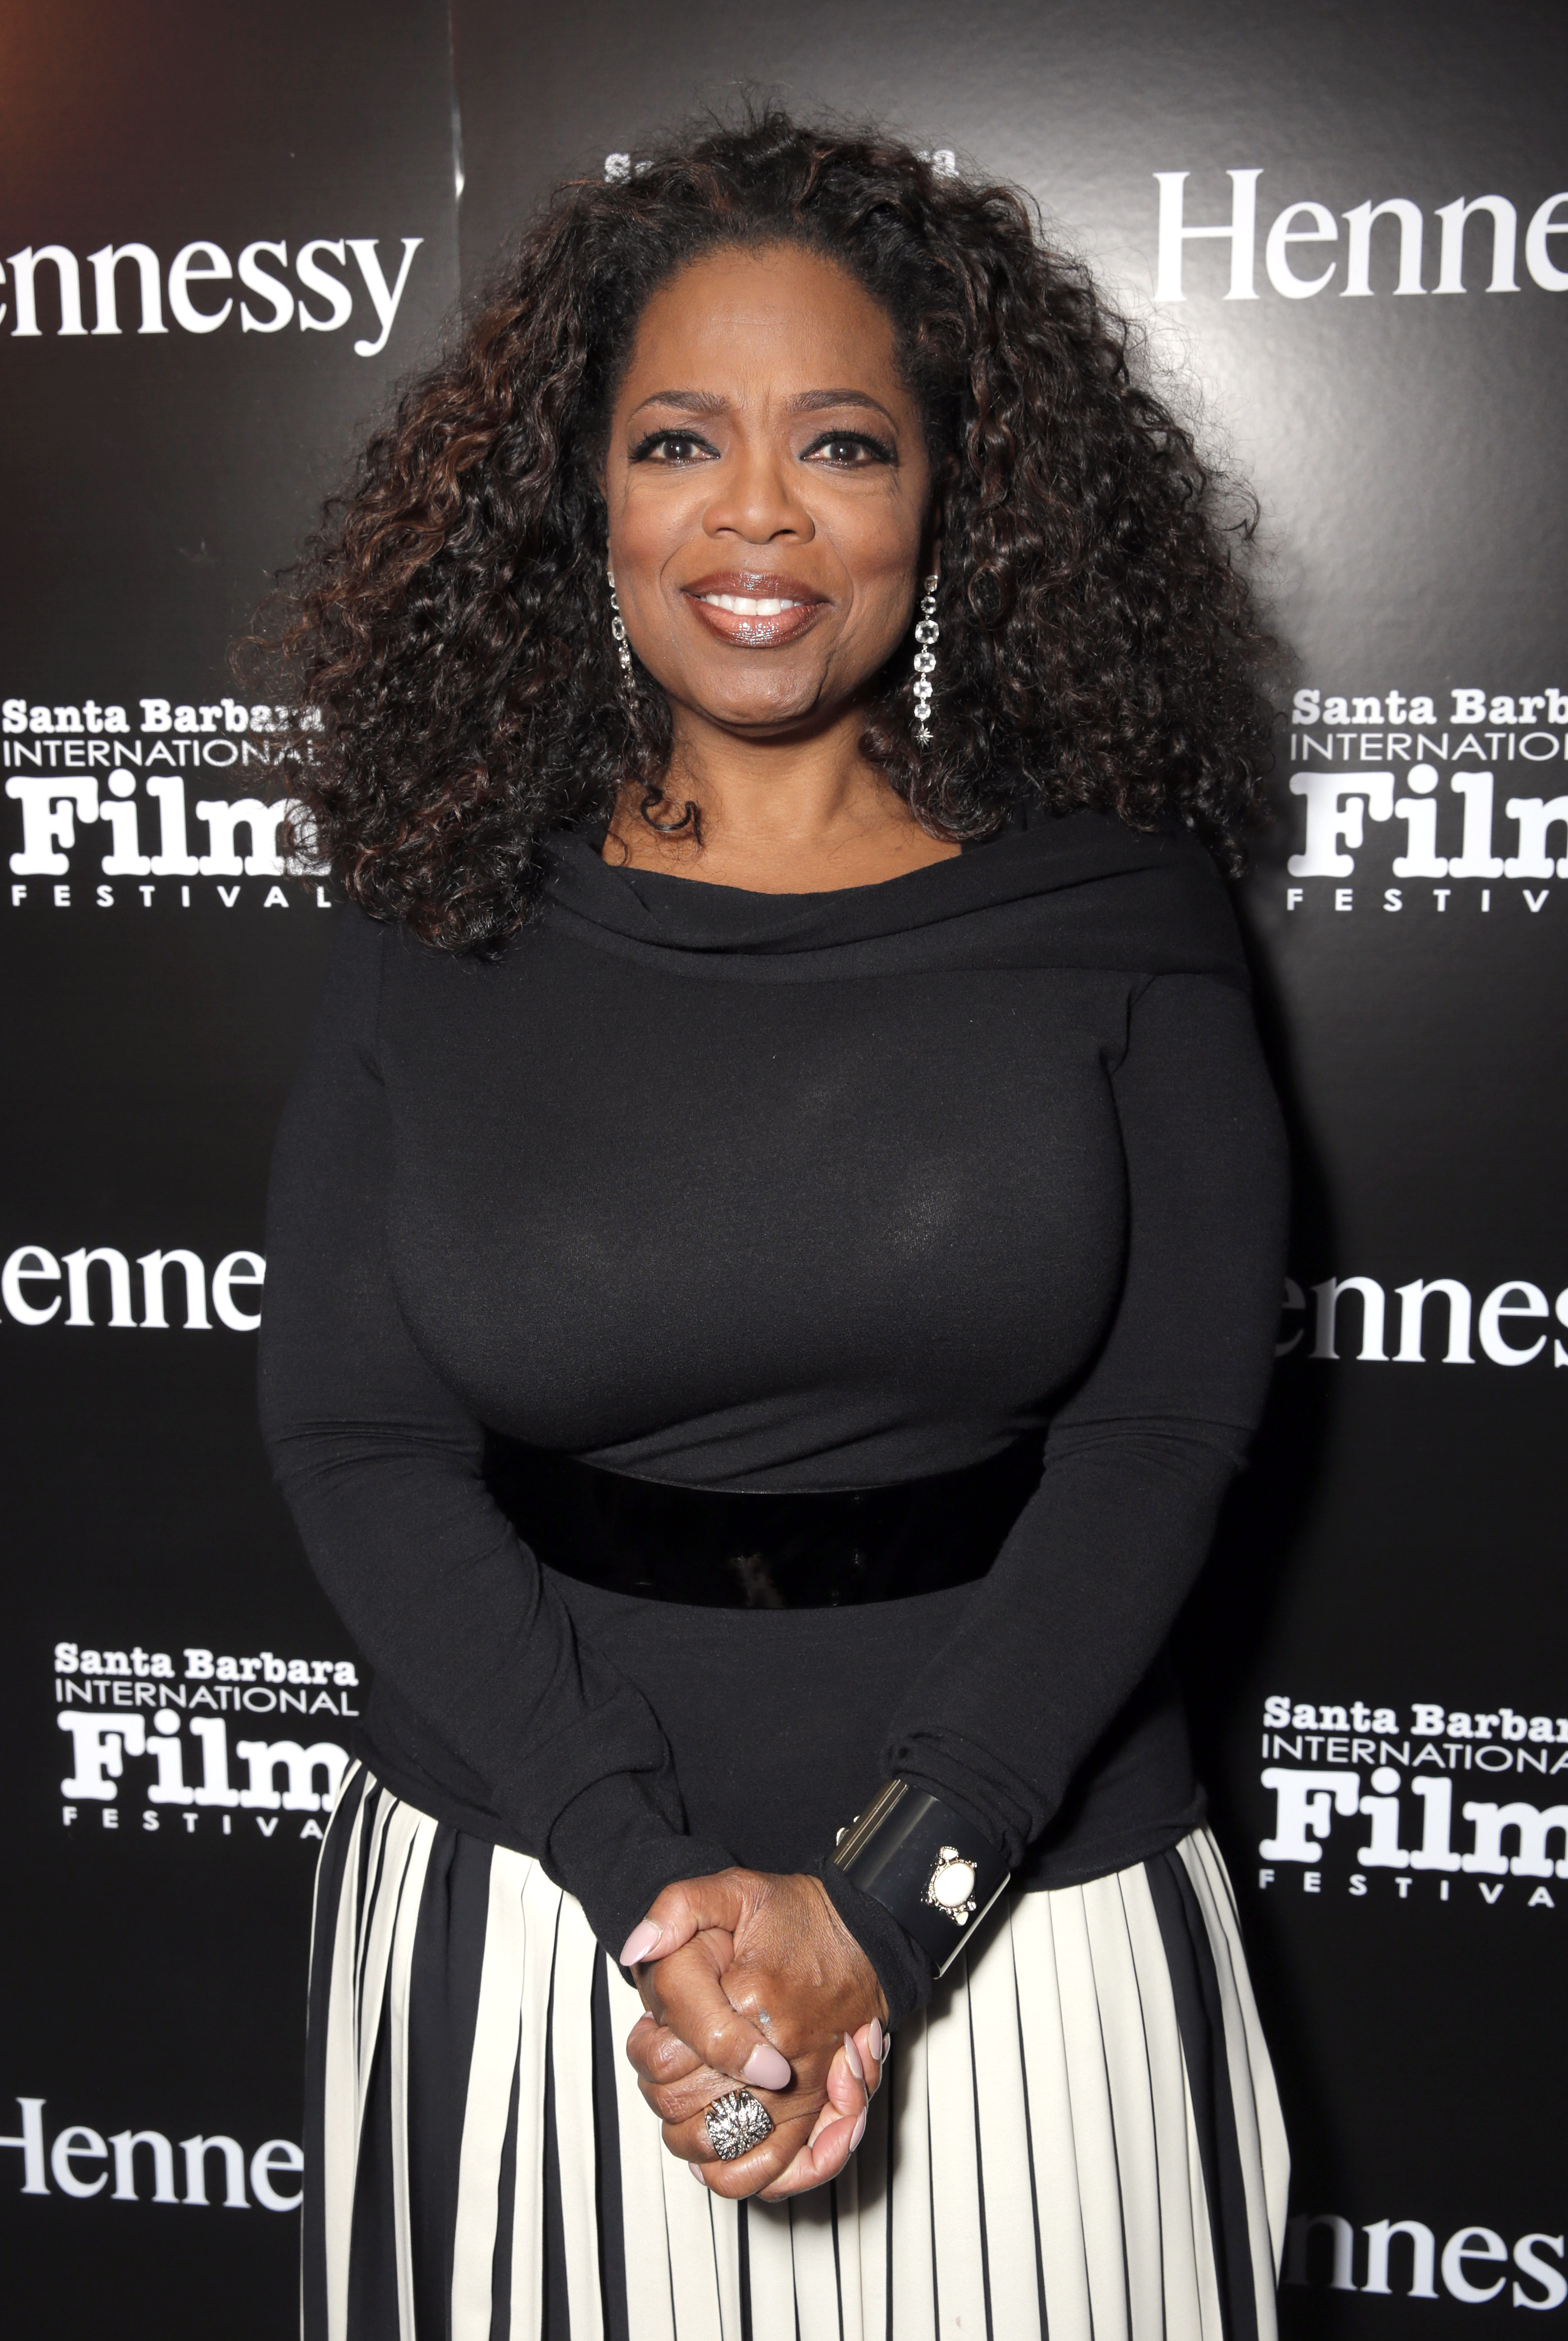 Oprah Winfrey attends the Hennessy Privilege VIP post-party at the Santa Barbara International Film Festival after receiving the Montecito Award at the Arlington Theatre on Wenesday, February 5, 2014 in Santa Barbara, California (Photo by Todd Williamson/Invision for Hennessy/AP Images)